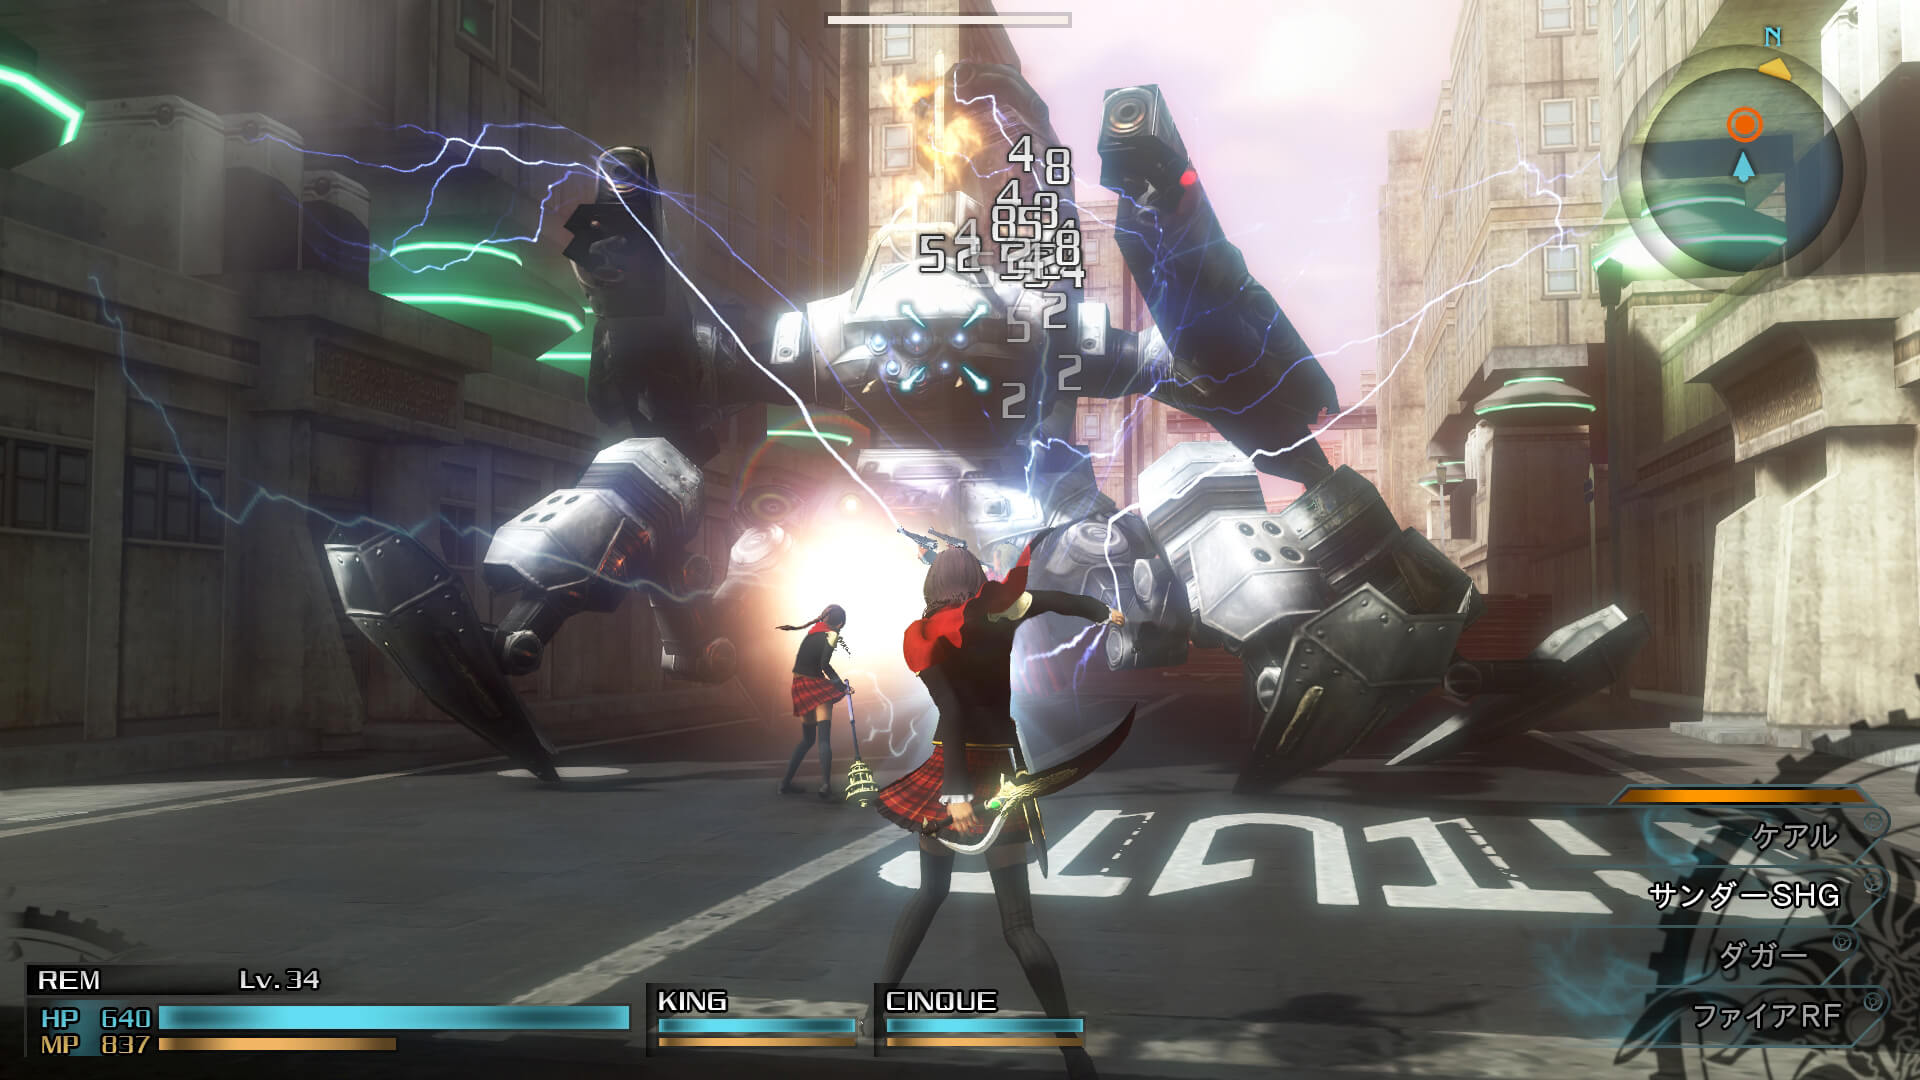 Final Fantasy Type 0 Hd For Ps4 Xb1 Pc Reviews Opencritic